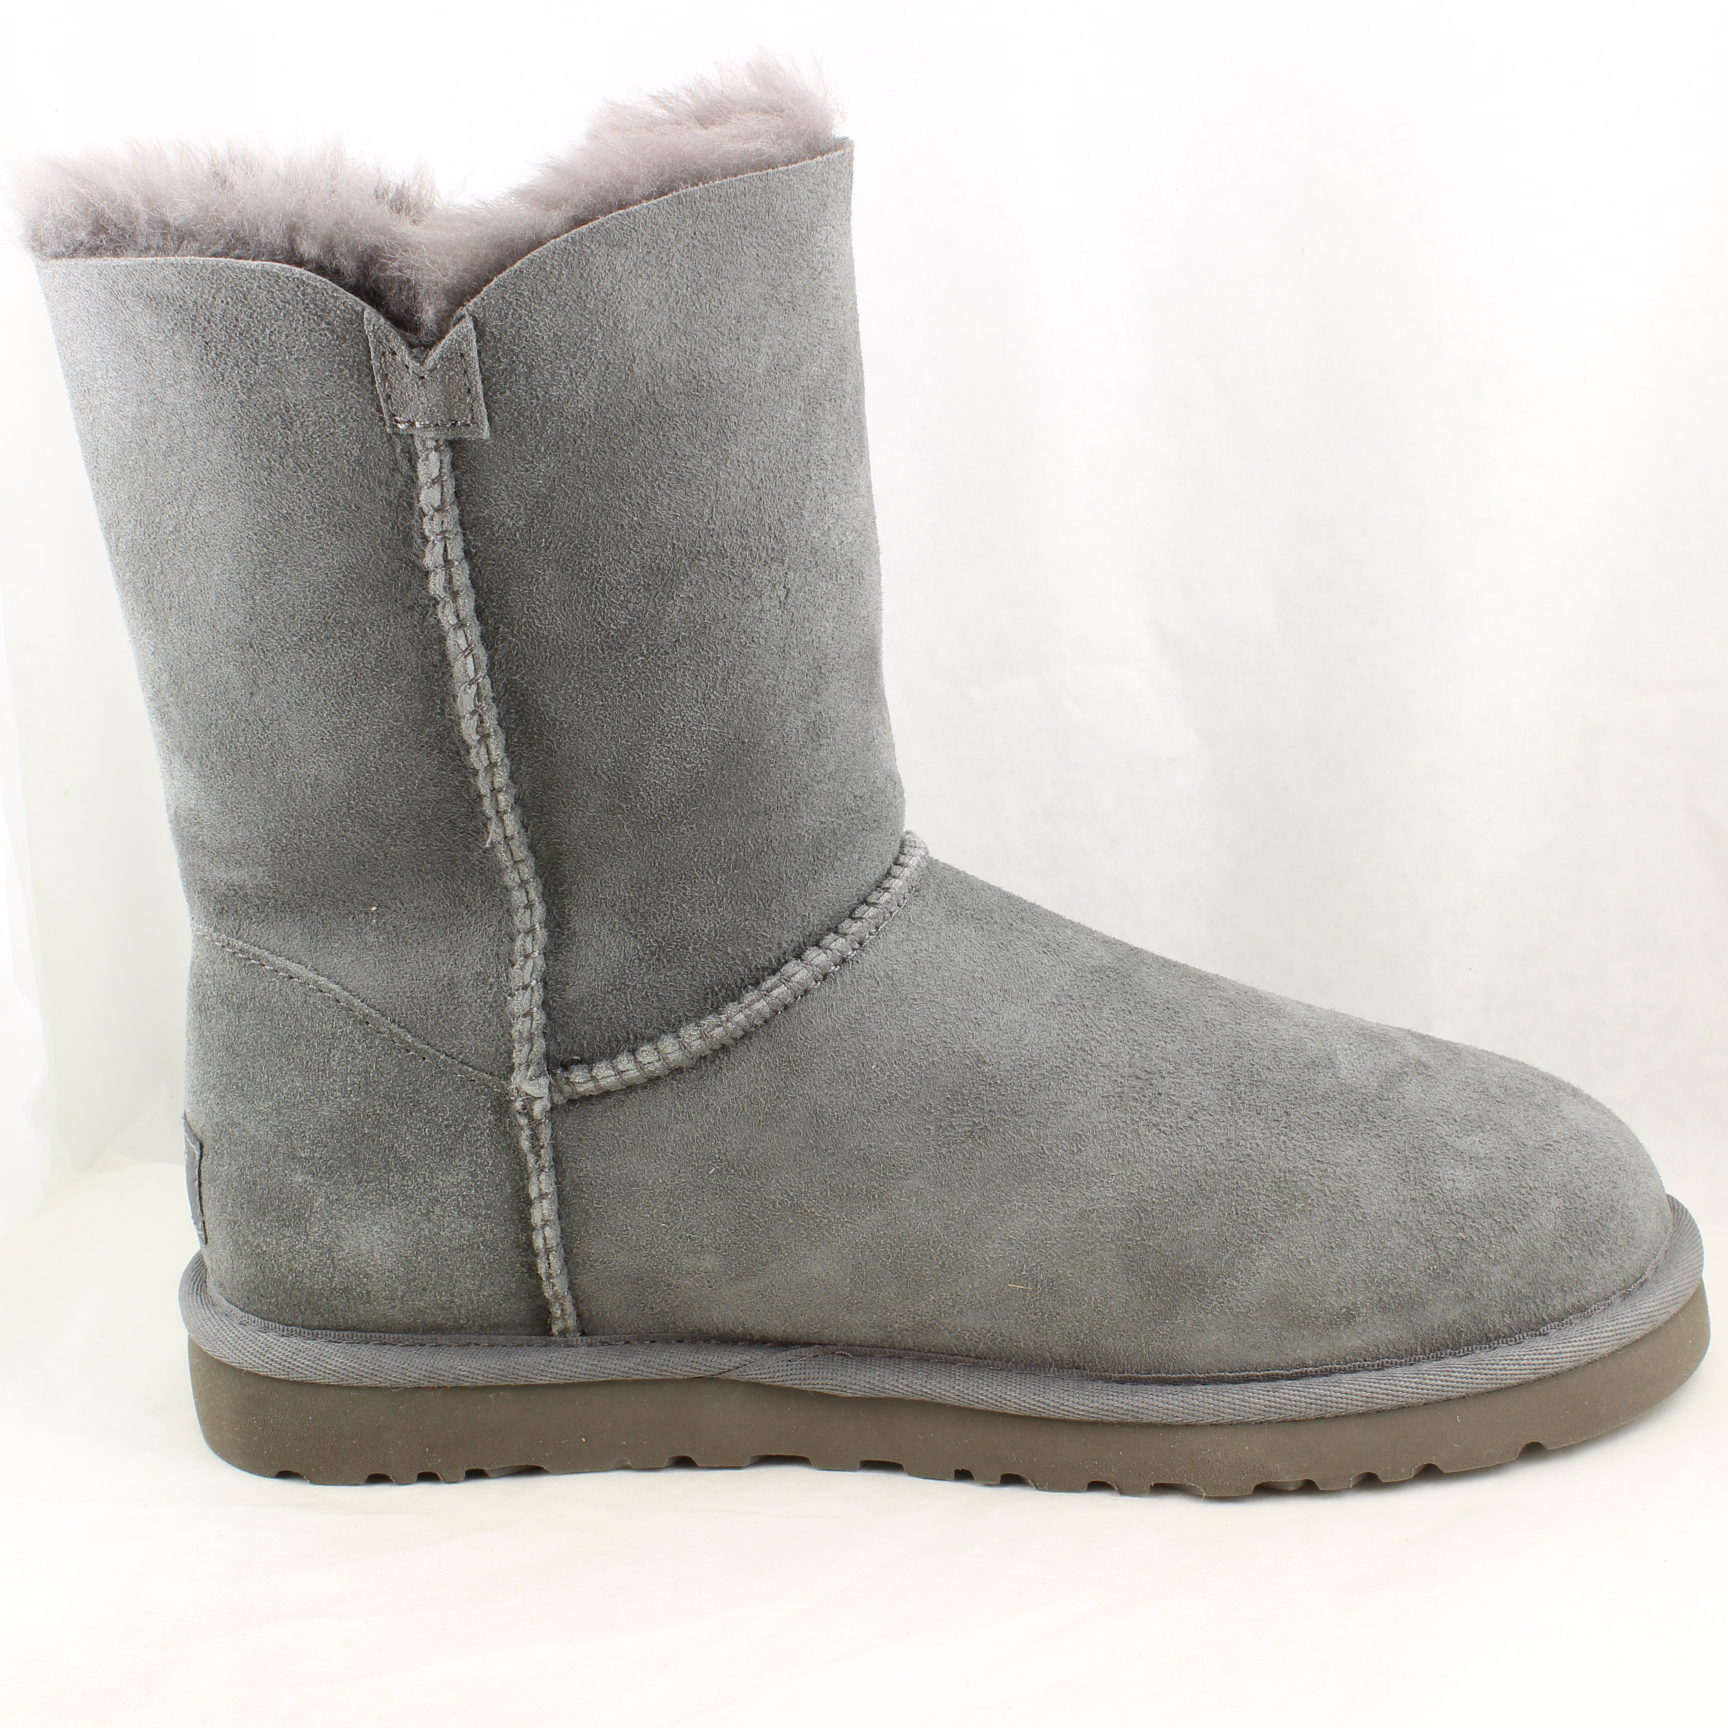 womens ugg australia pull on grey suede boots uk size 5 5